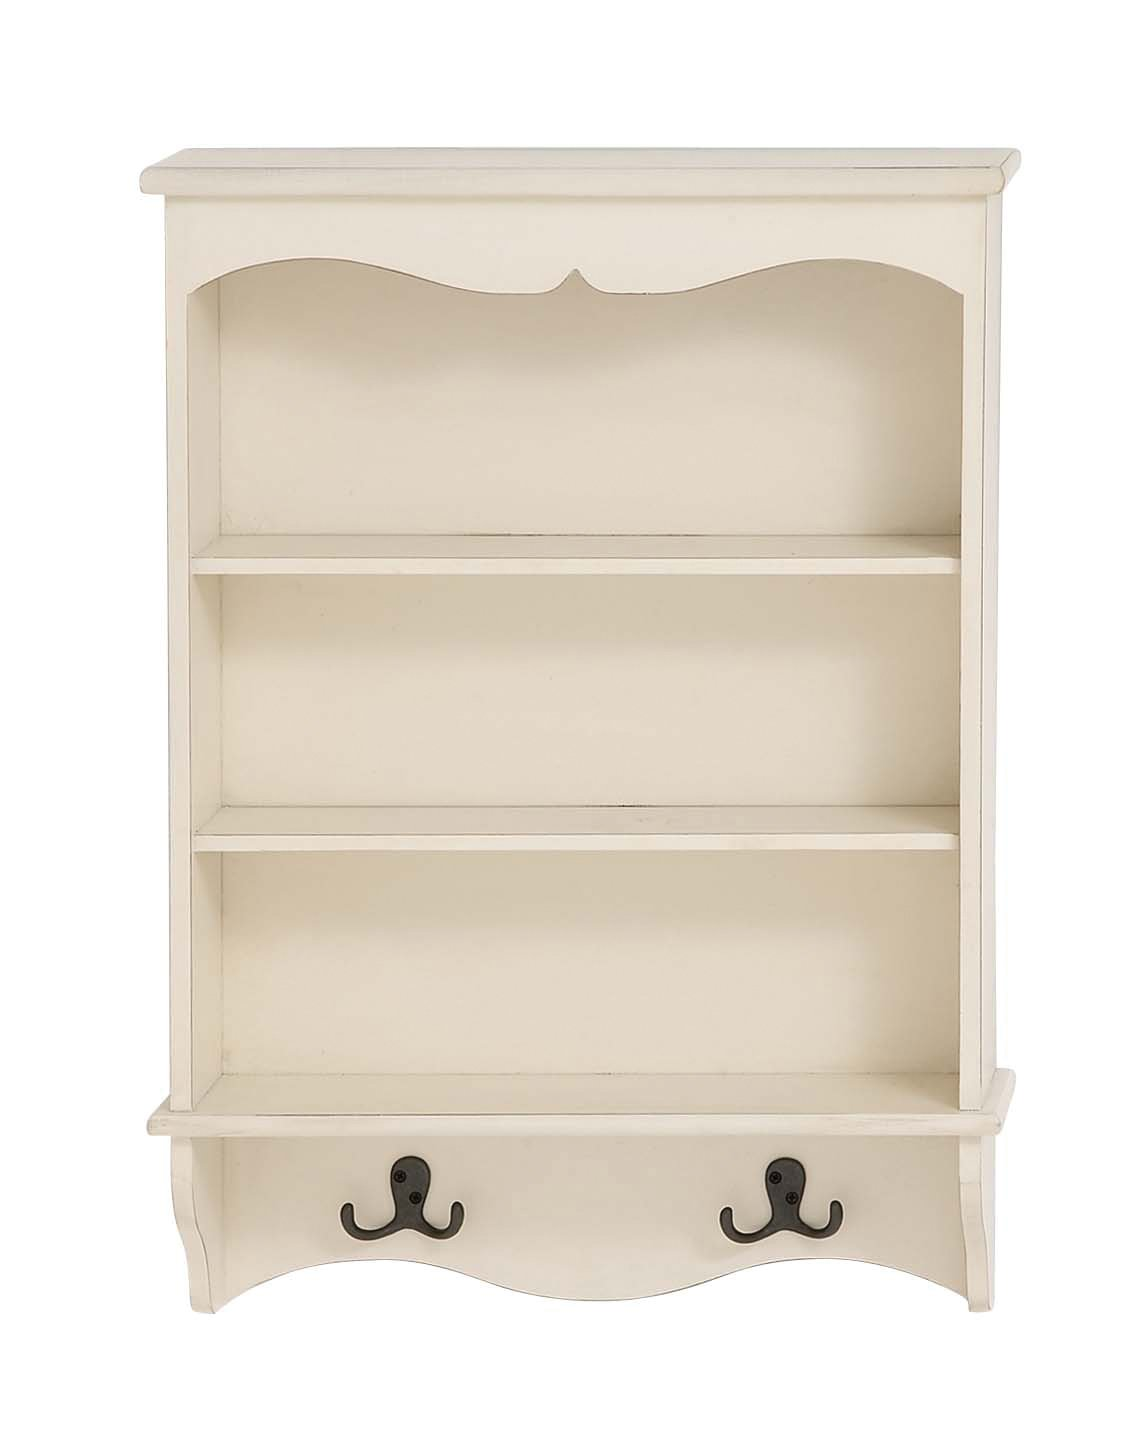 Deco 79 96287 Wood Wall Shelf with Hook, 19 by 26''